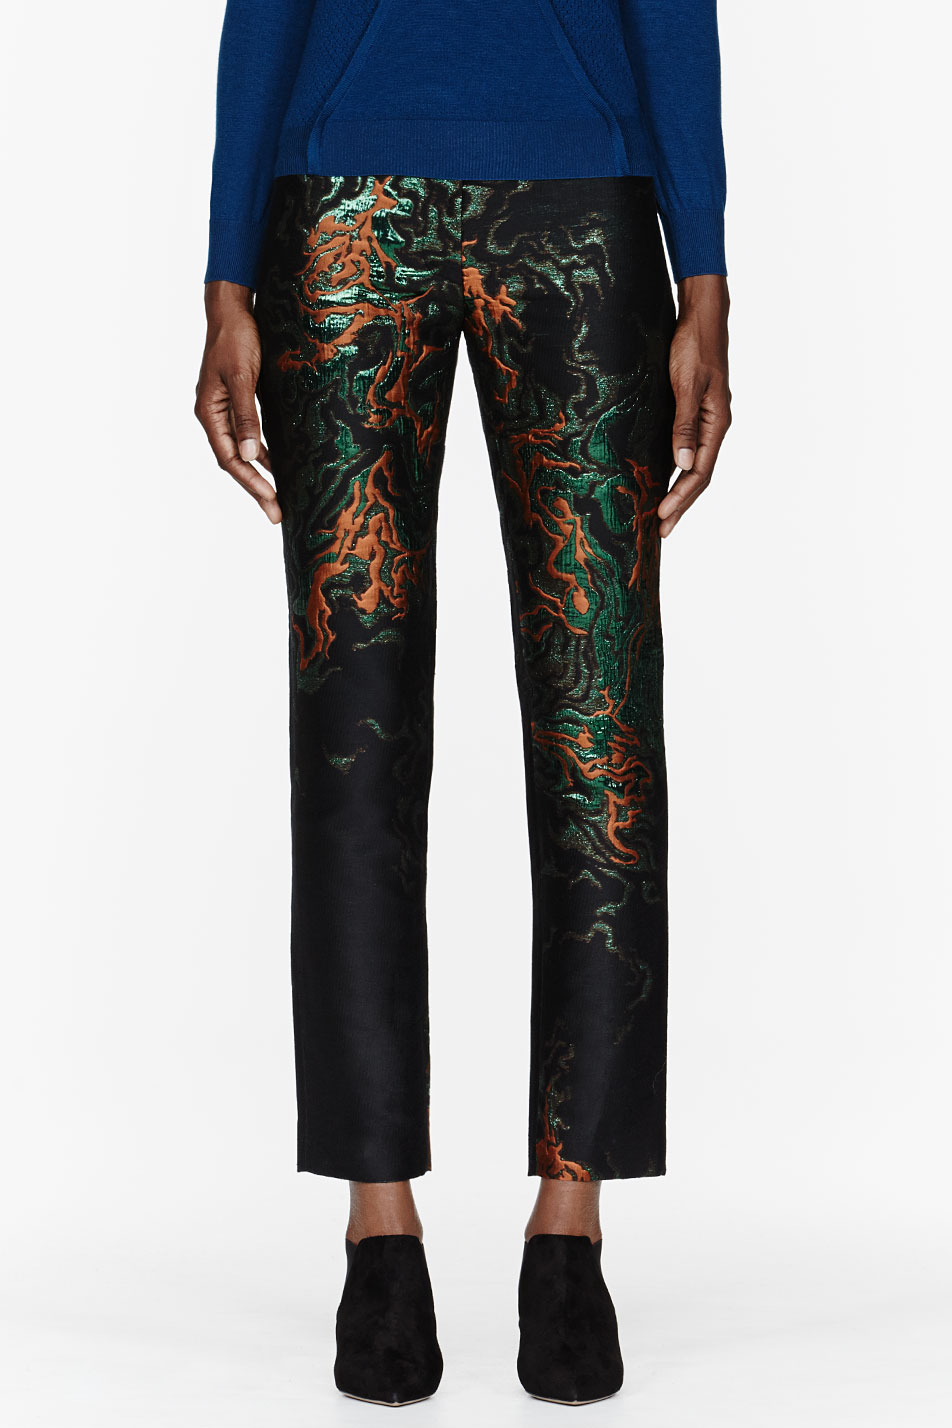 cdric charlier black and metallic embroidered pants